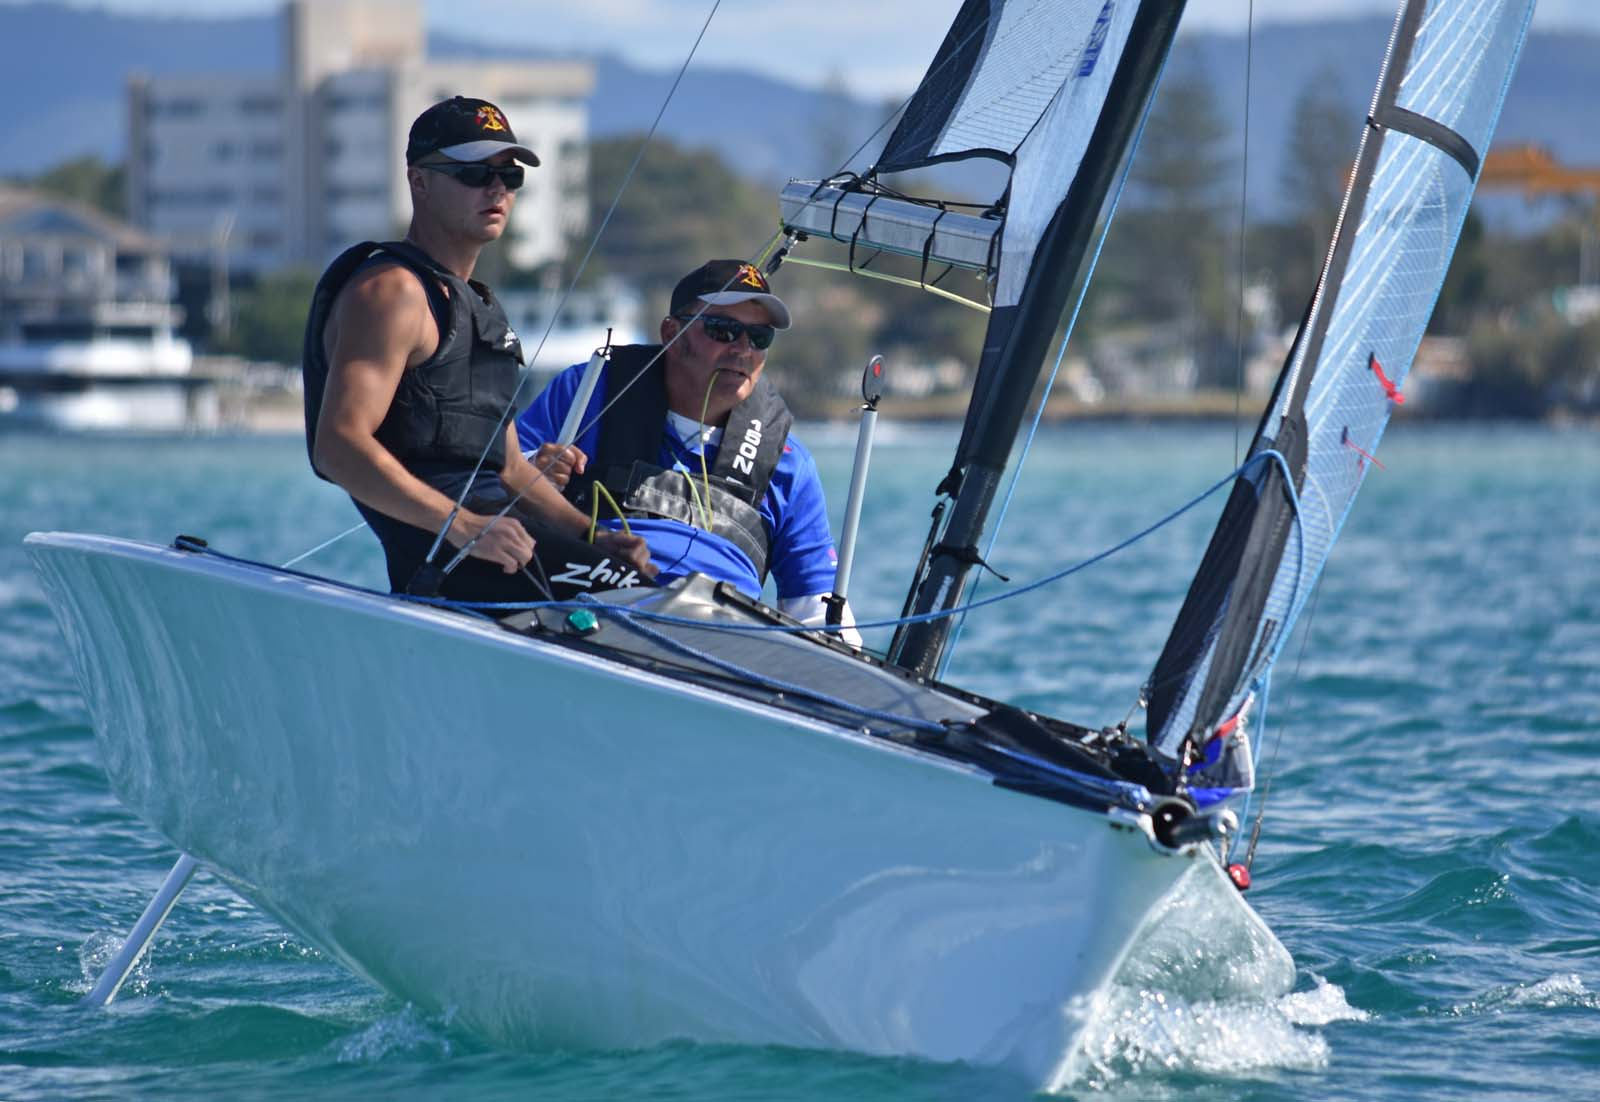 Ross Manning & Max Quan have backed up their 2018 Australian Para Sailing Championship in the SKUD 18. Photo David Staley.